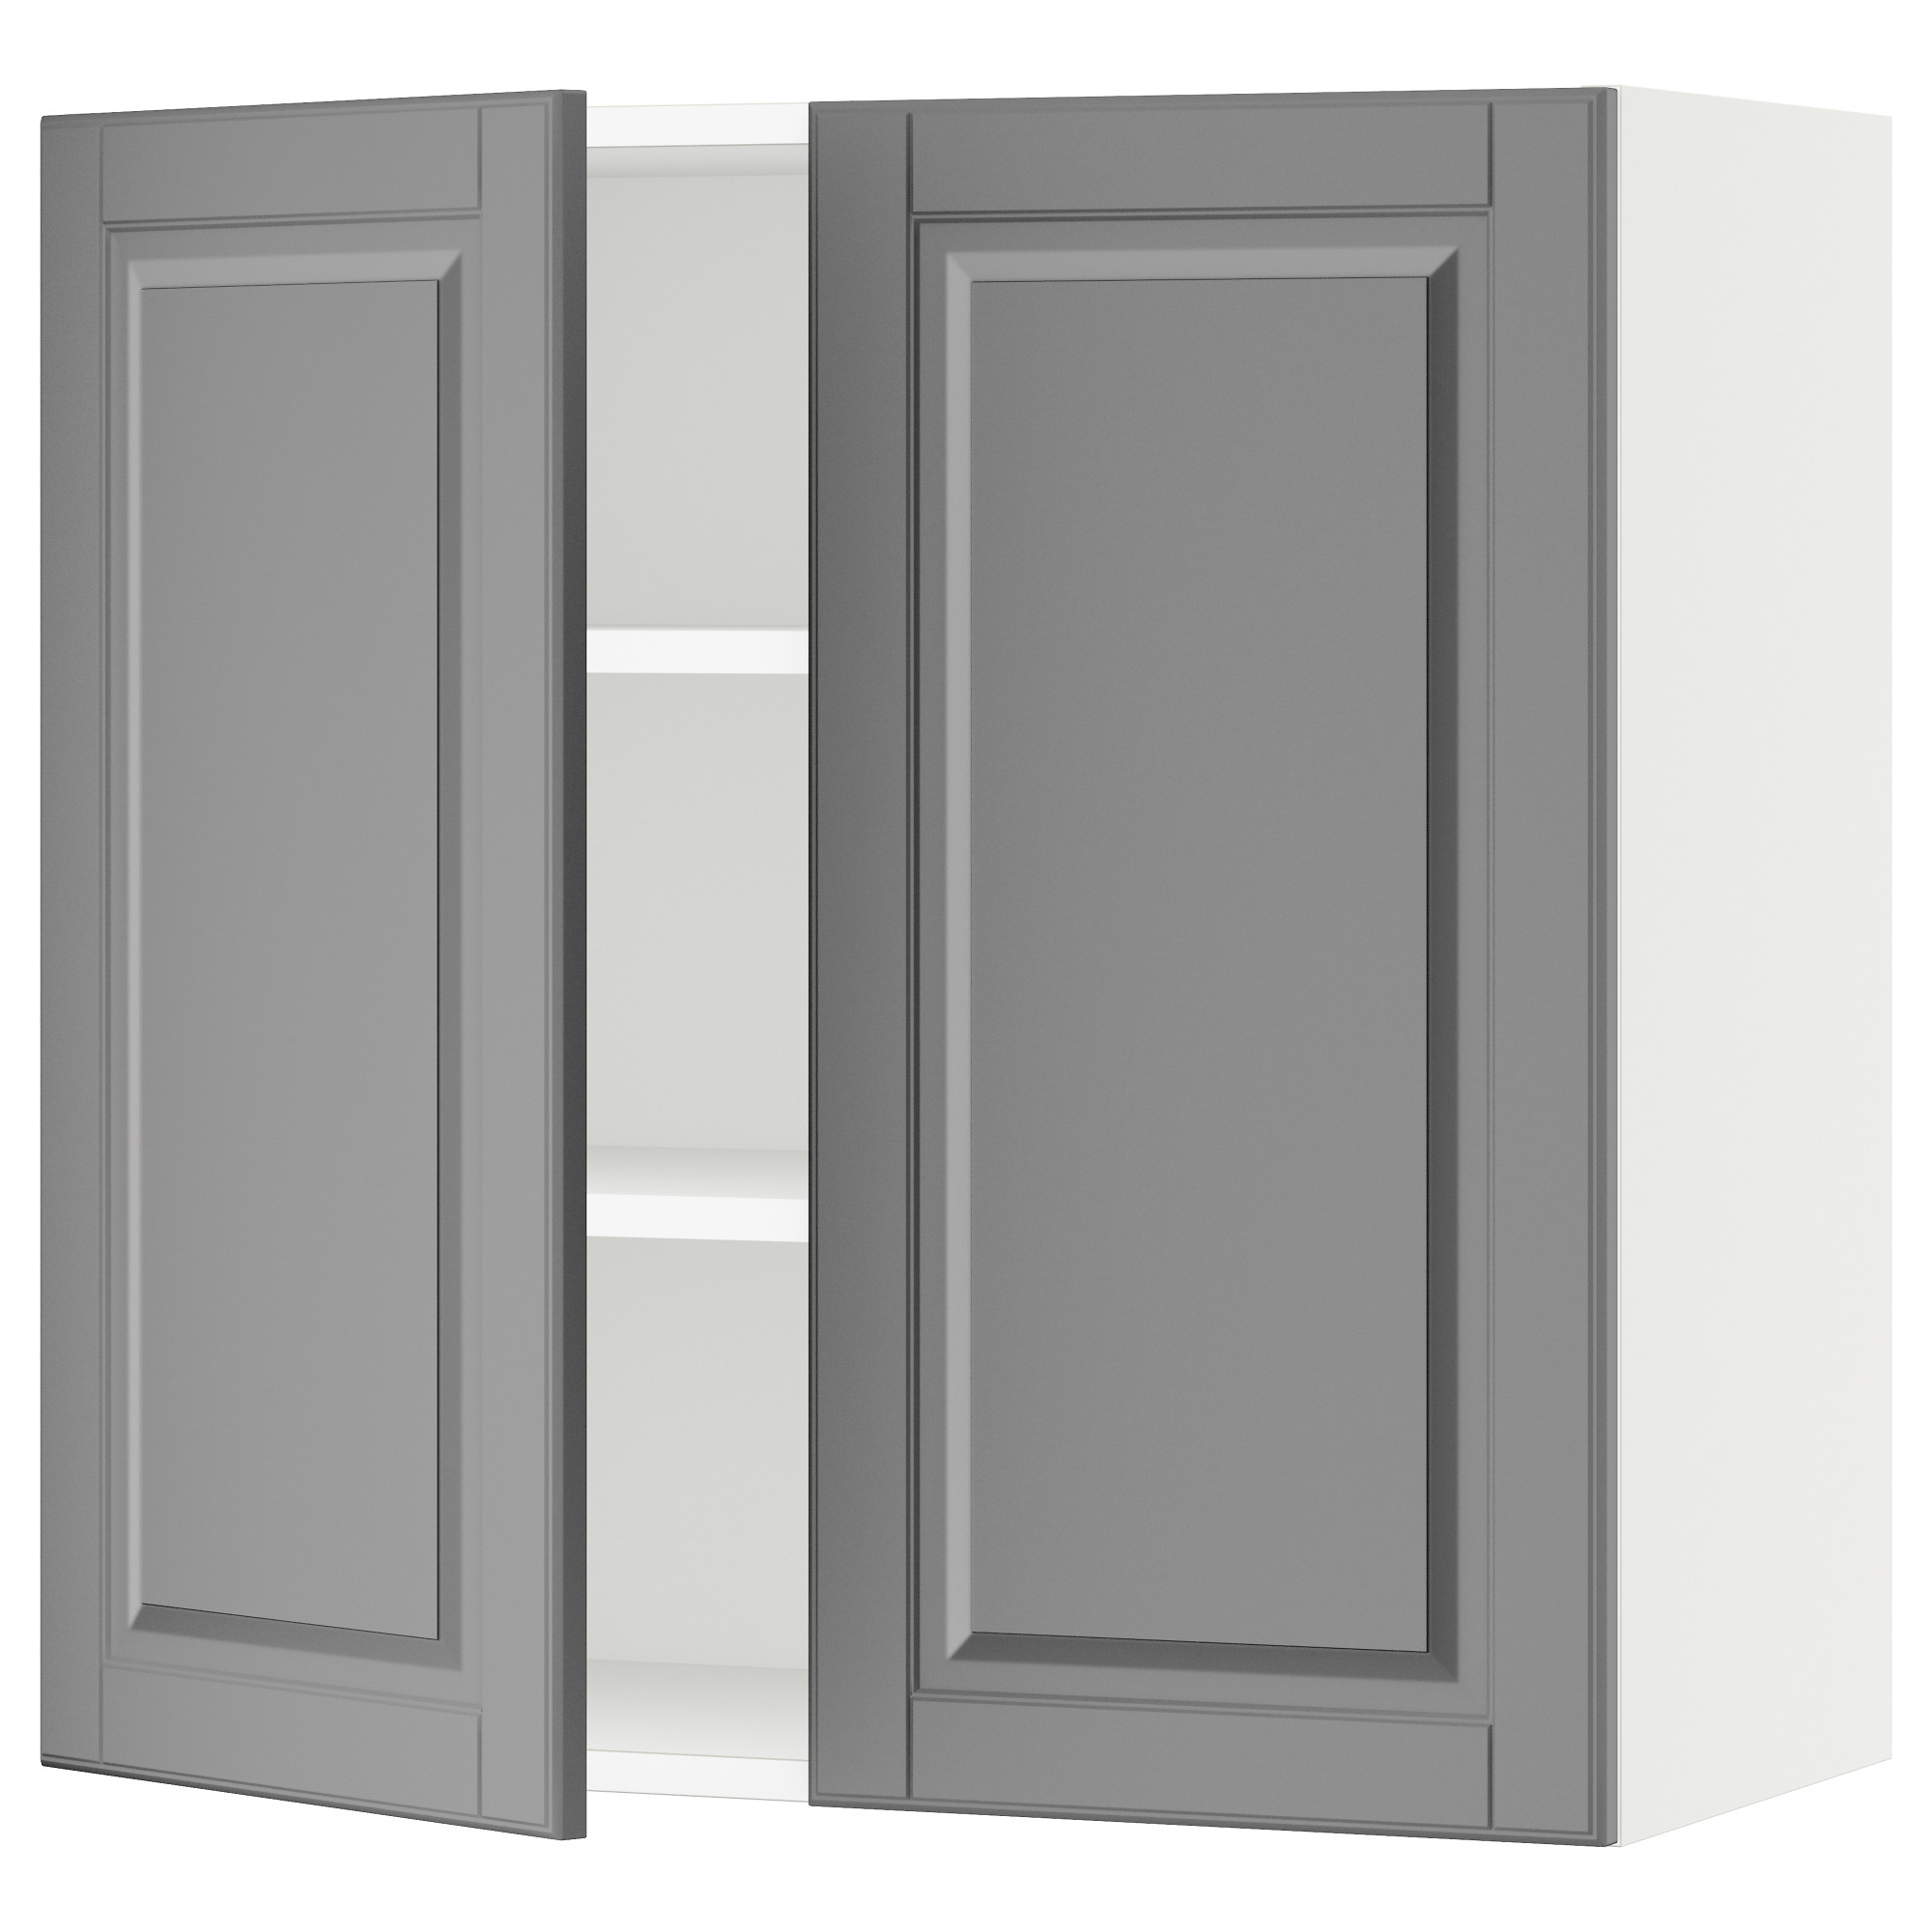 Ikea kitchen cabinet doors white roselawnlutheran - Ikea cabinet doors on existing cabinets ...